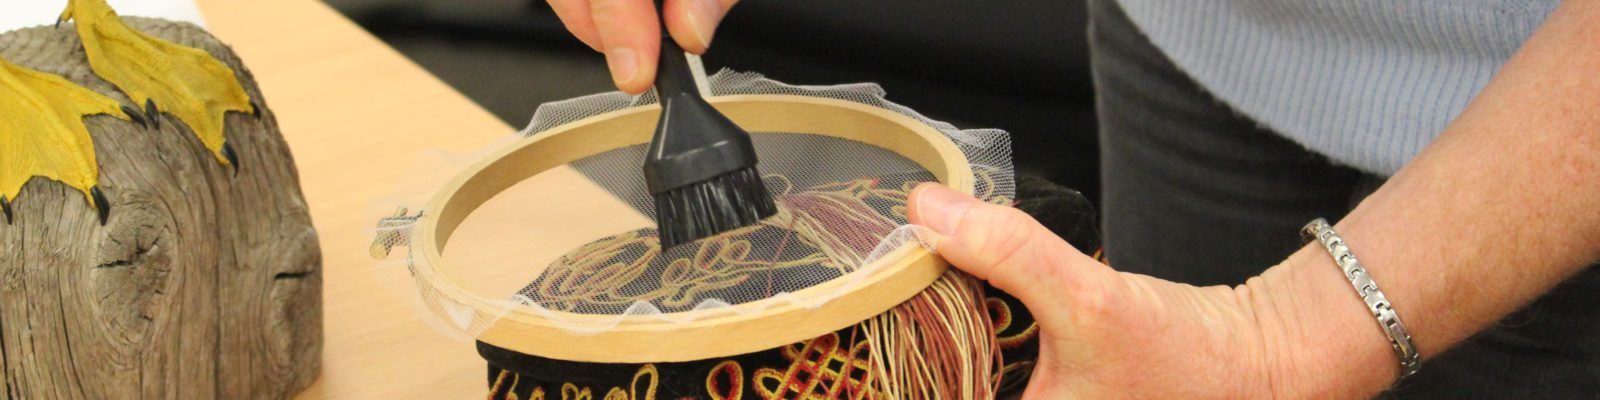 Pair of hands holding a small vacuum attachment on top of a gauze film over an embroidered cap.